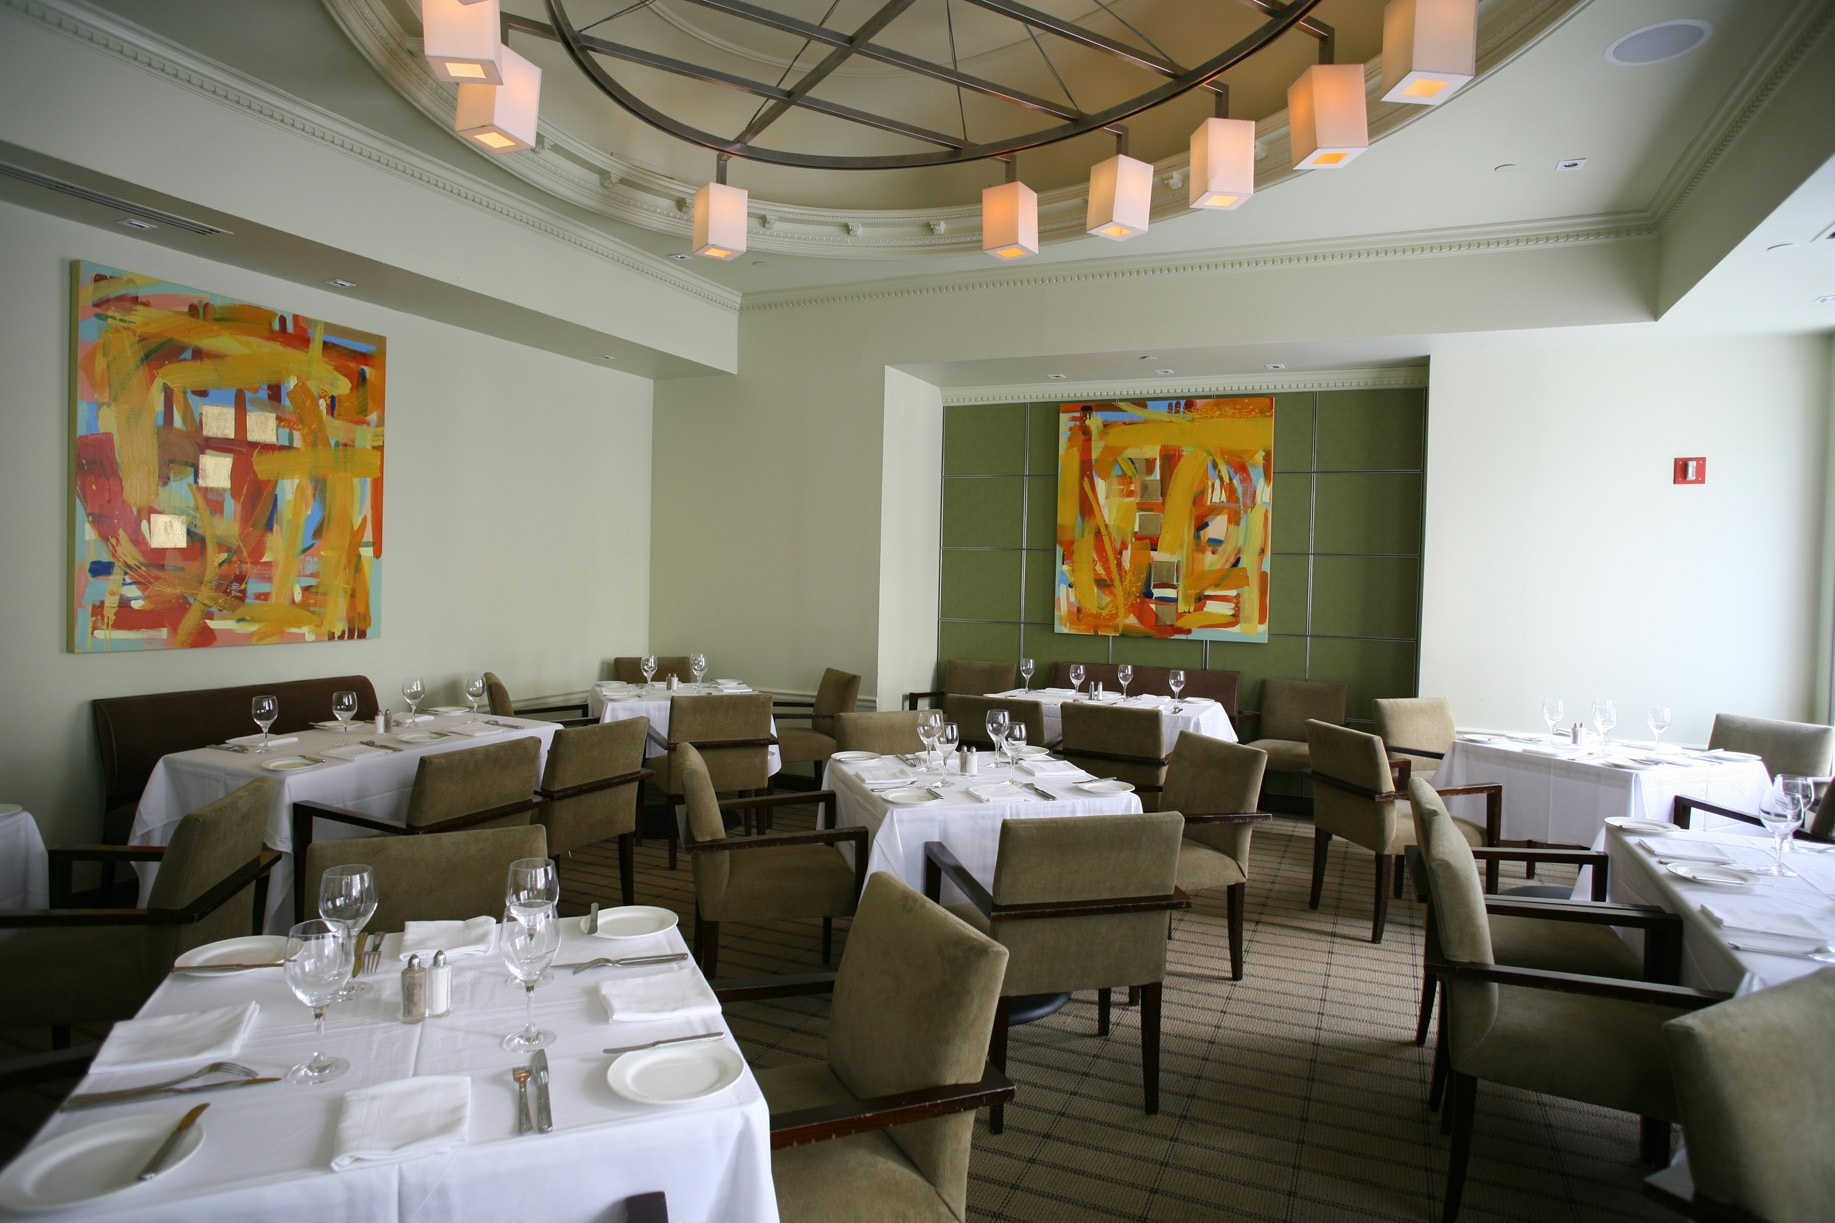 The Oval Room's dining room will get a makeover when it closes at the end of June for a month. (Photo: Oval Room)